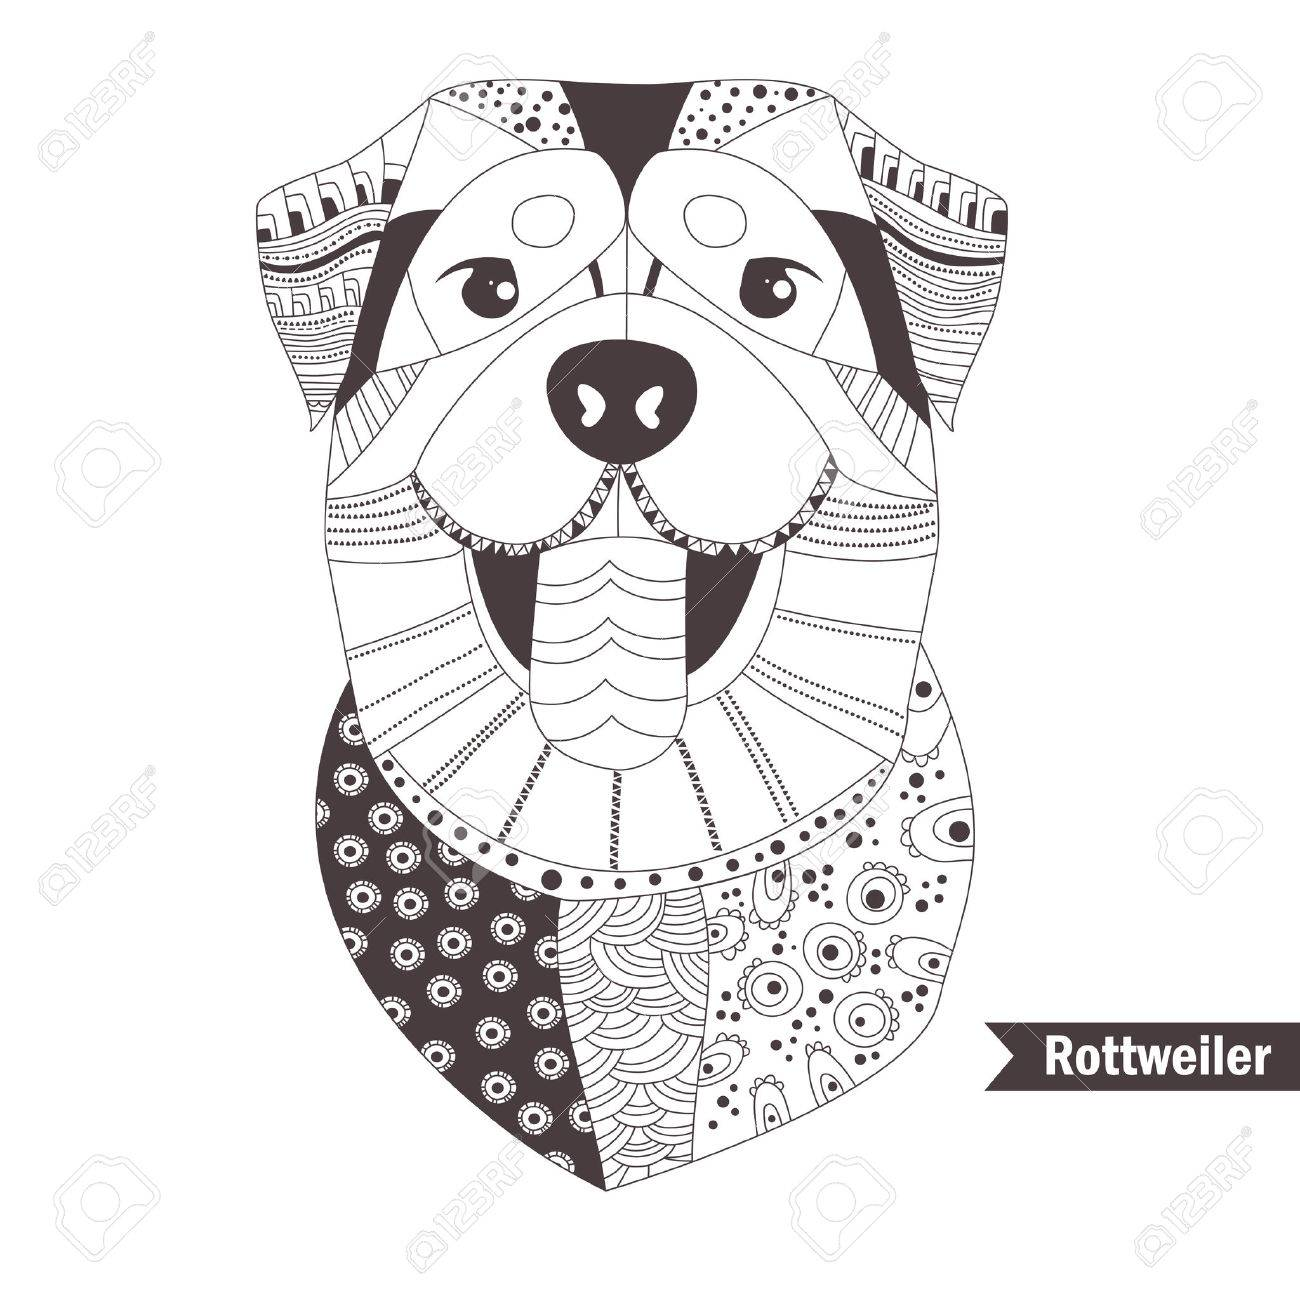 Rottweiler. Coloring Book For Adult, Antistress Coloring Pages. Hand Drawn  Vector Isolated Illustration